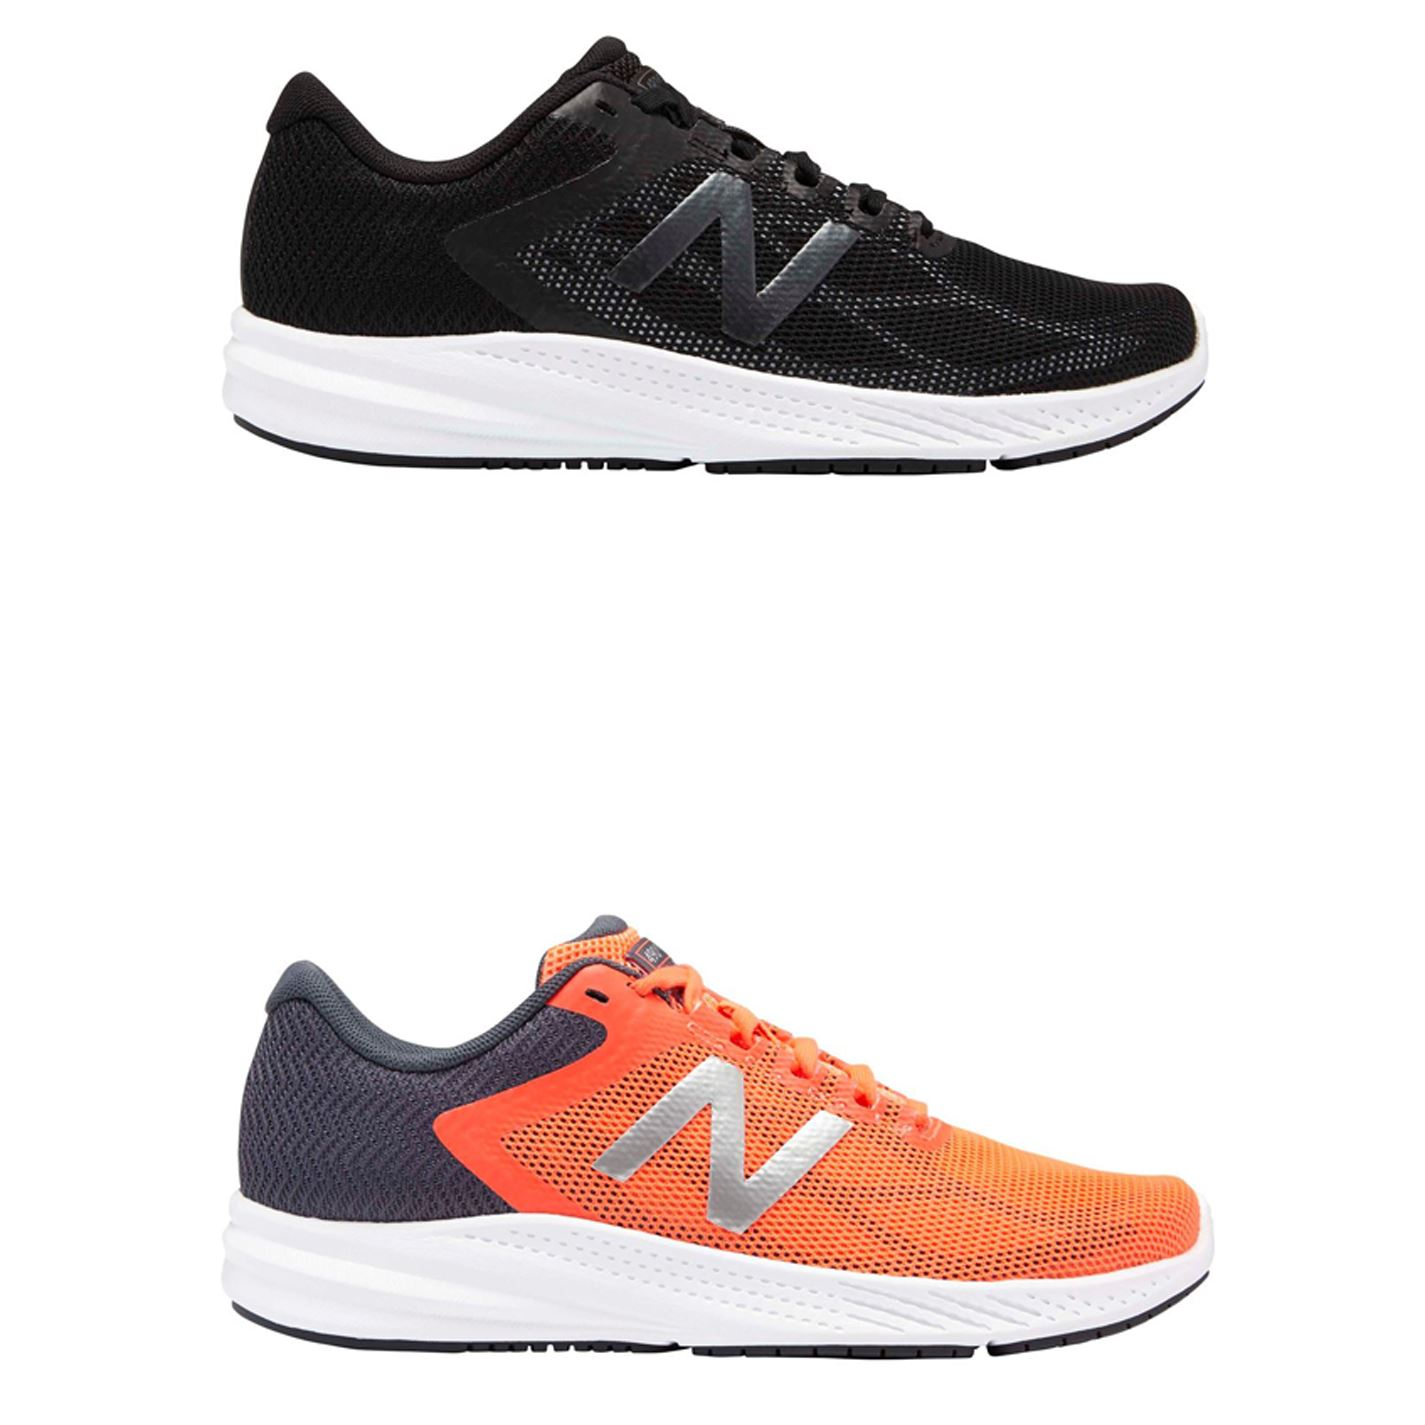 Details about NEW Balance W 490 Running Shoes Womens Trainers Gym Shoes  Fitness- show original title